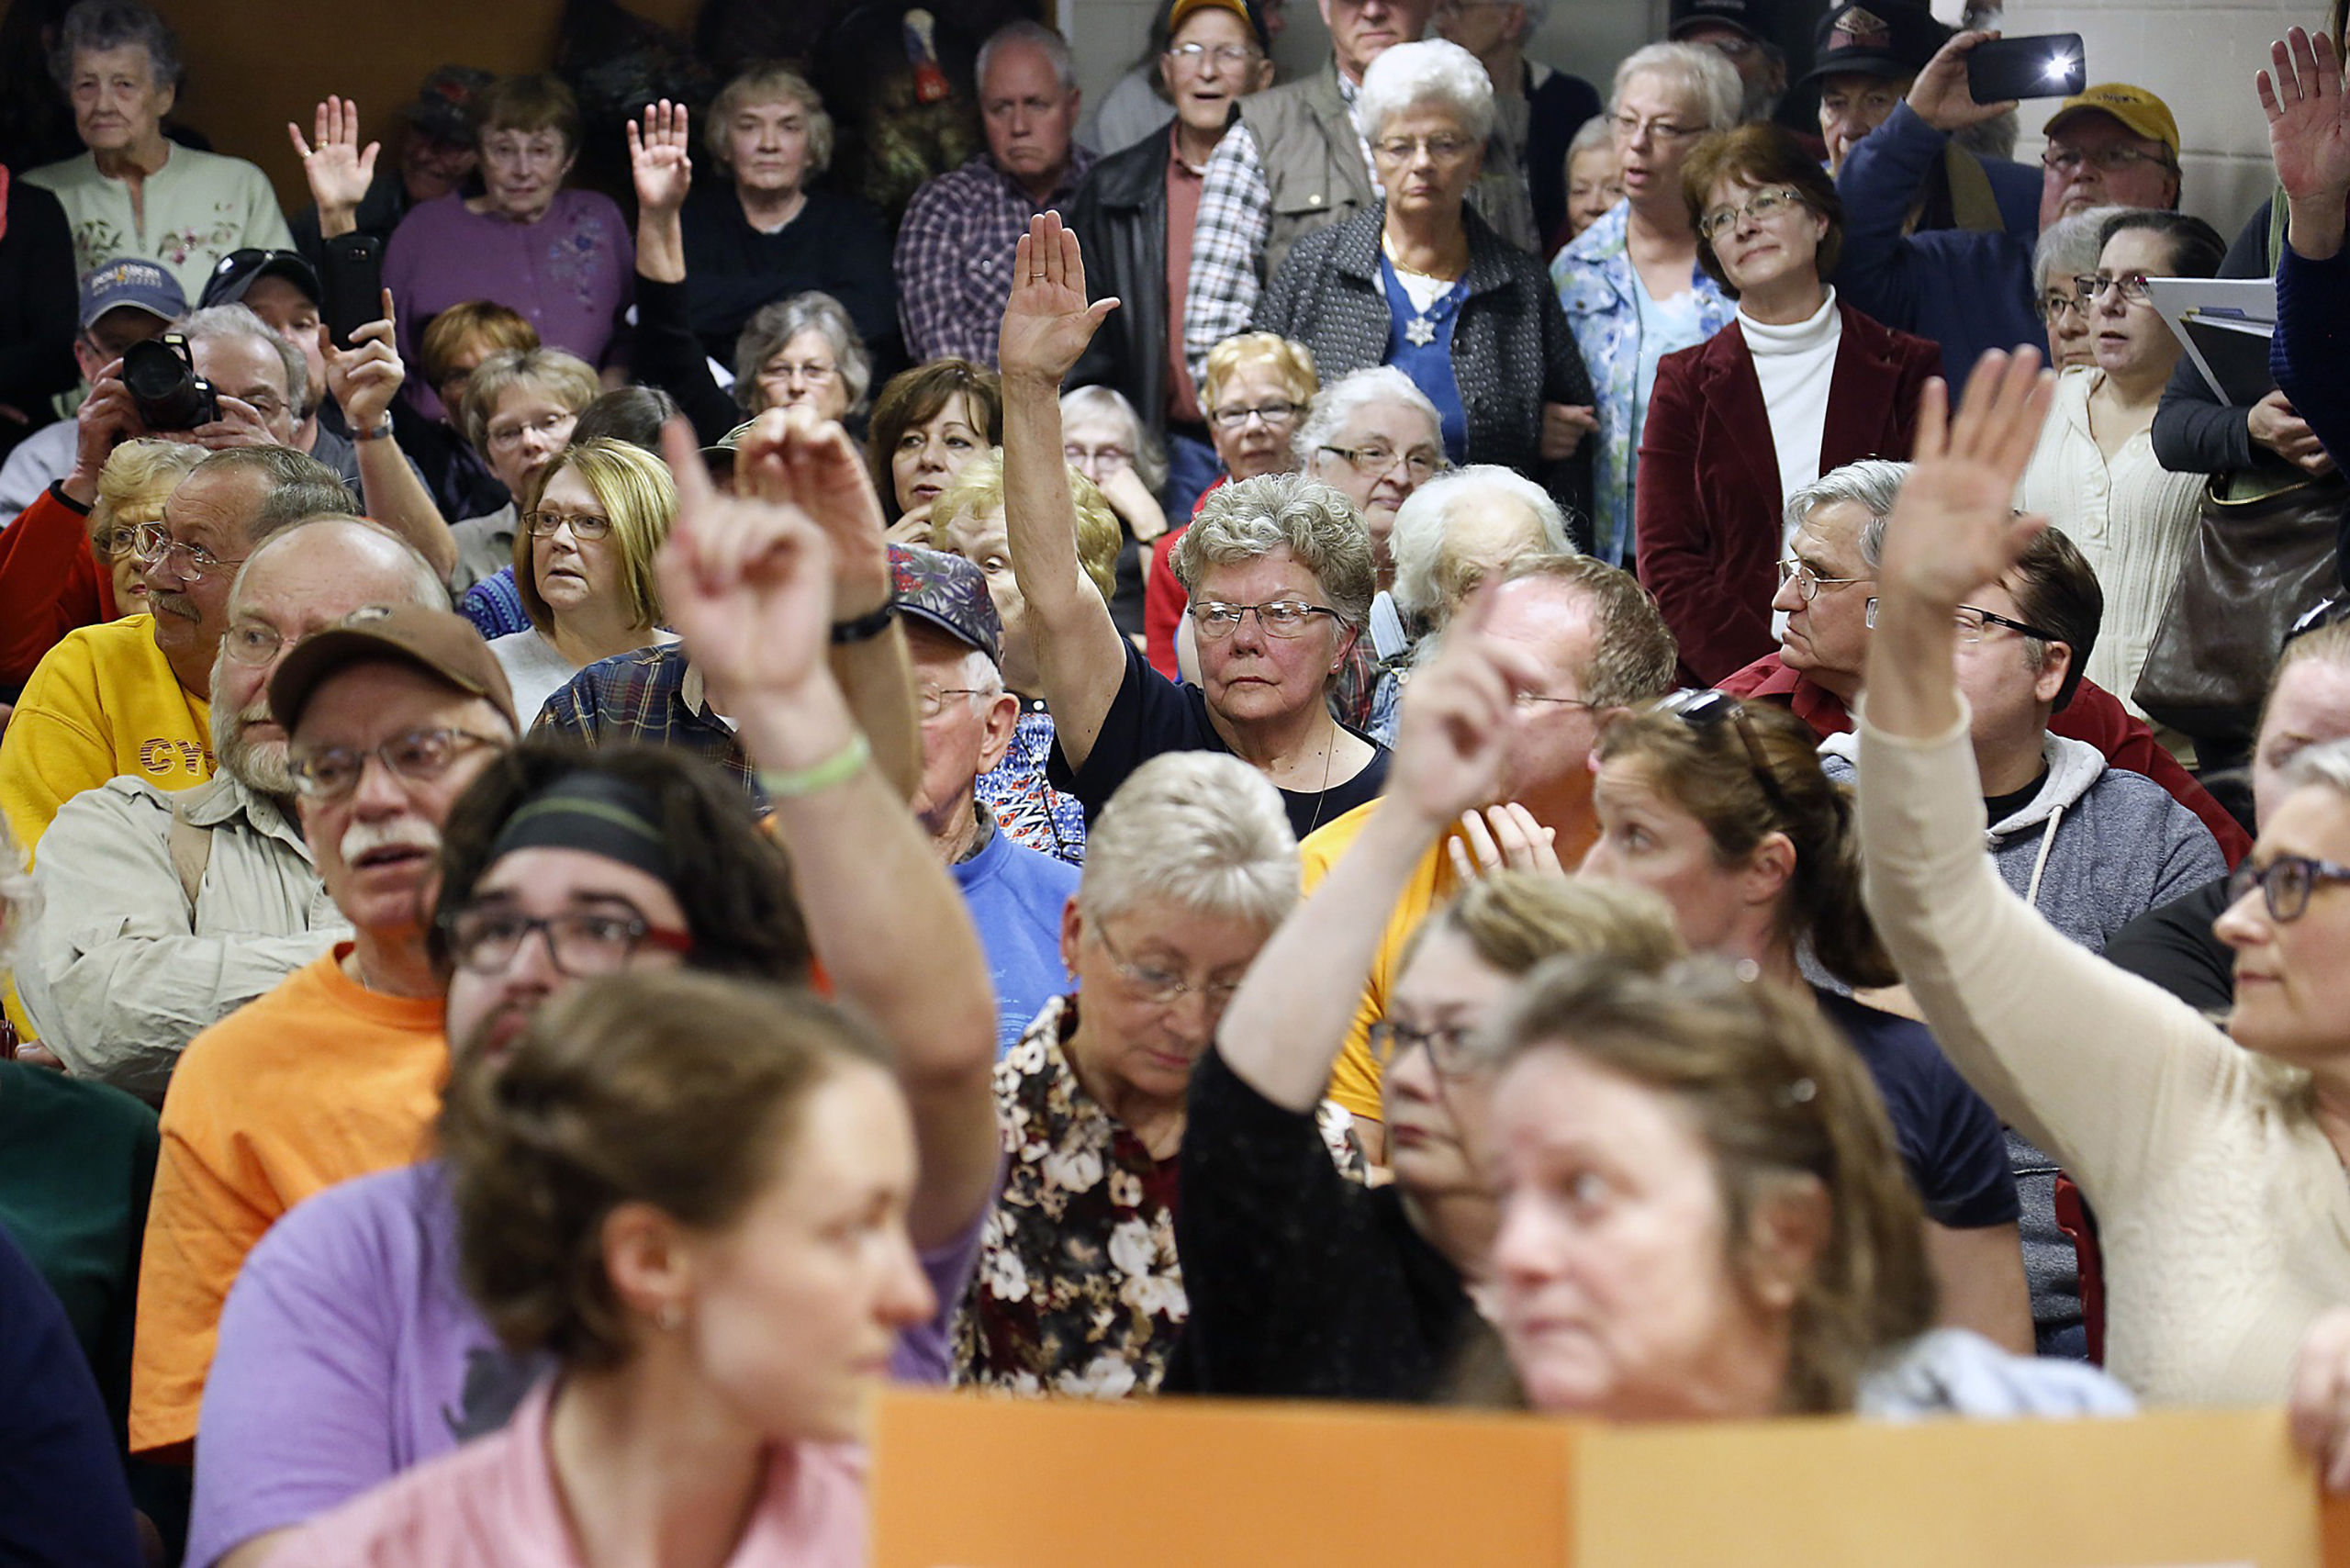 At town halls across the country, including this one for Senator Chuck Grassley in Garner, Iowa, on Feb. 21, voters have raised concerns about losing benefits under plans to repeal and replace Obamacare.